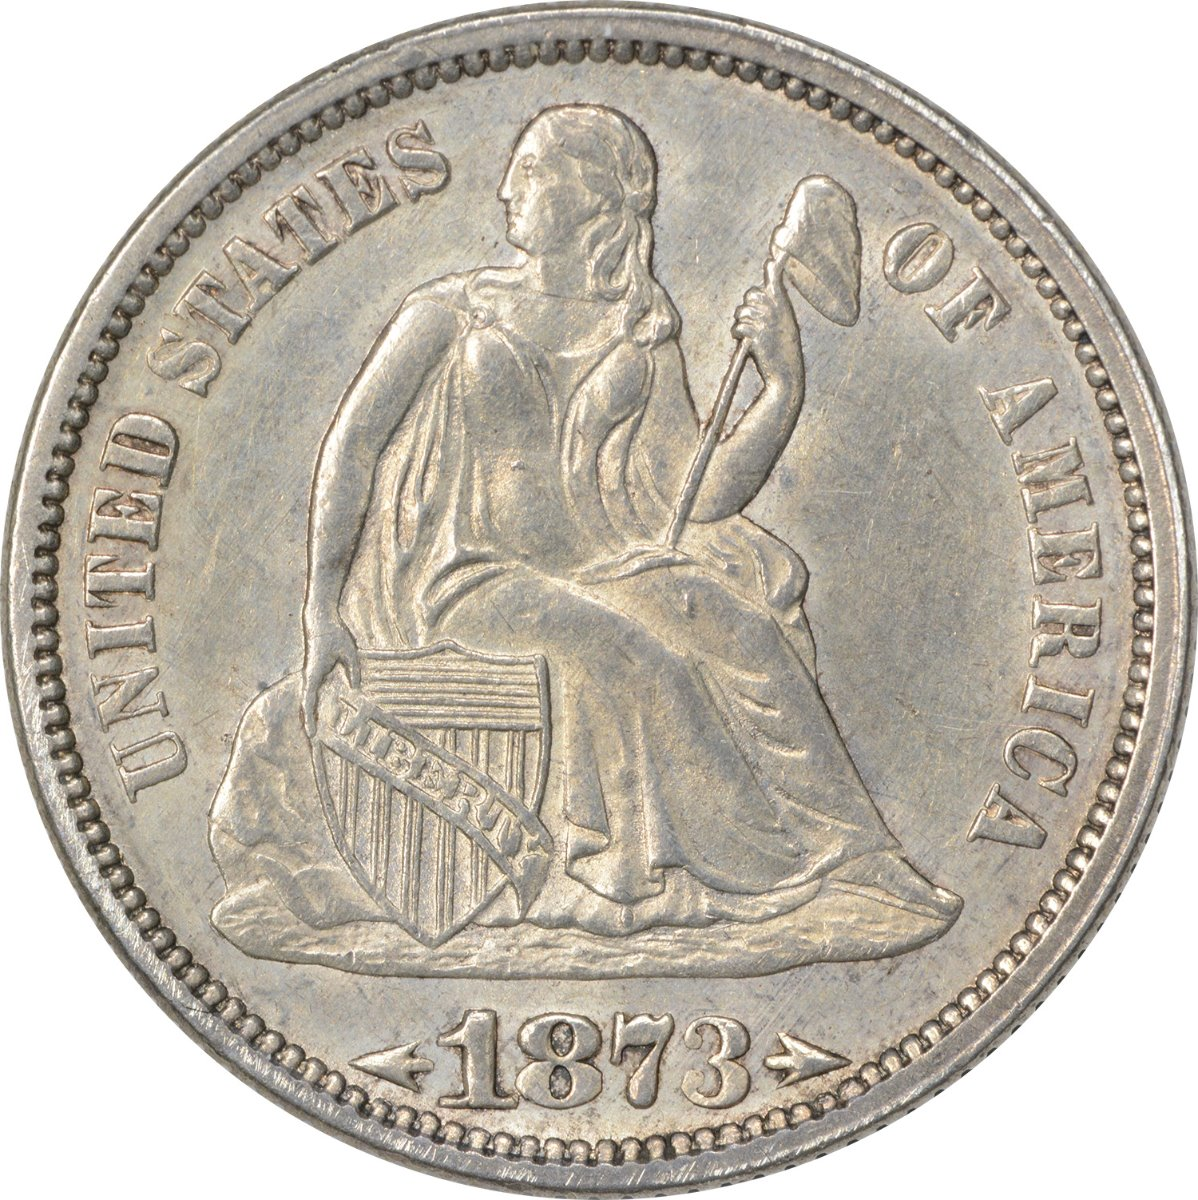 Liberty Seated Silver Dimes